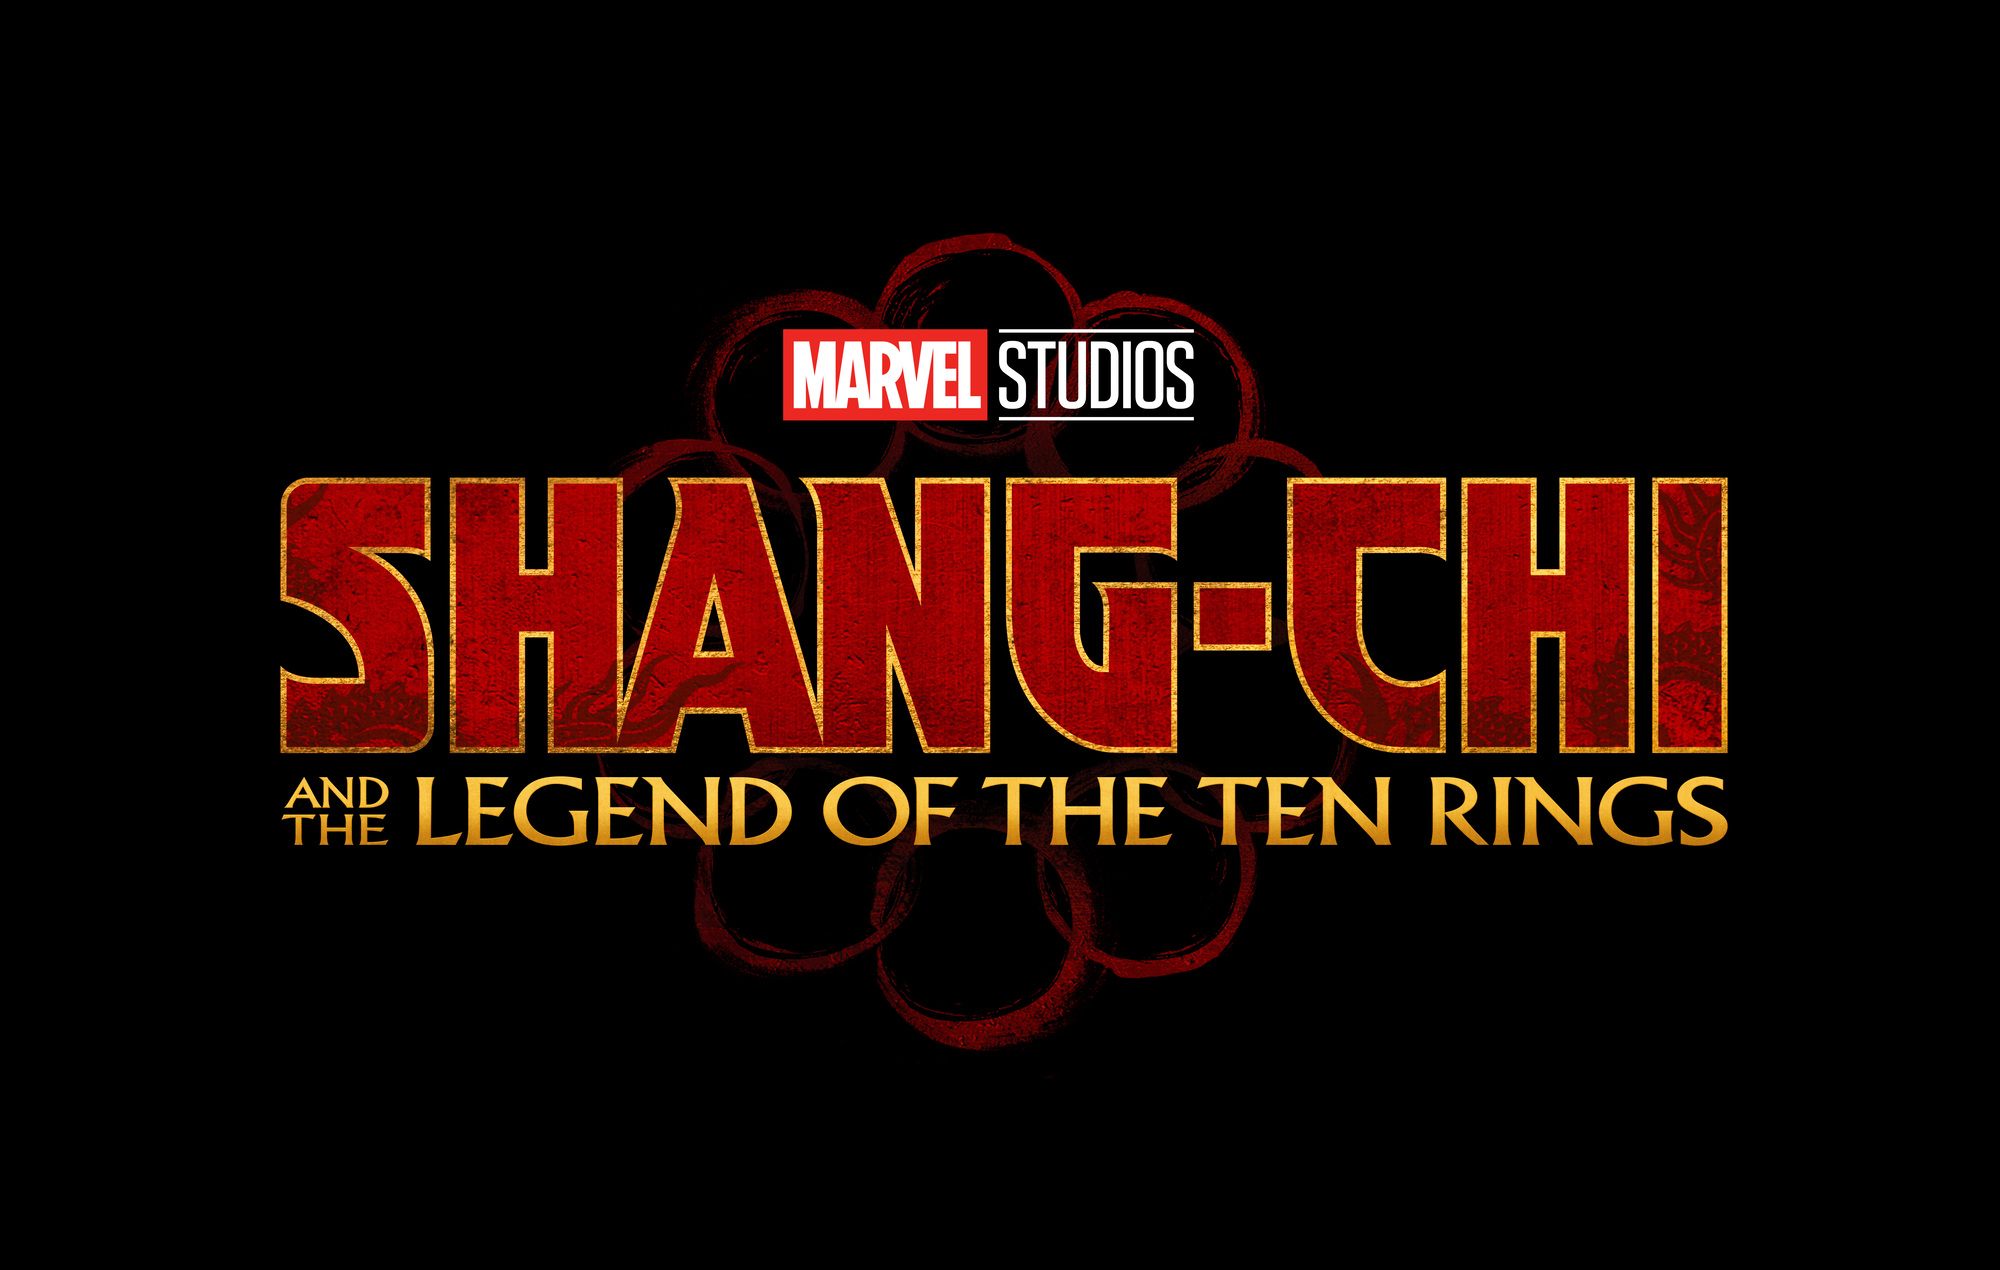 'Shang-Chi and the Legend of the Ten Rings' - landscape artwork